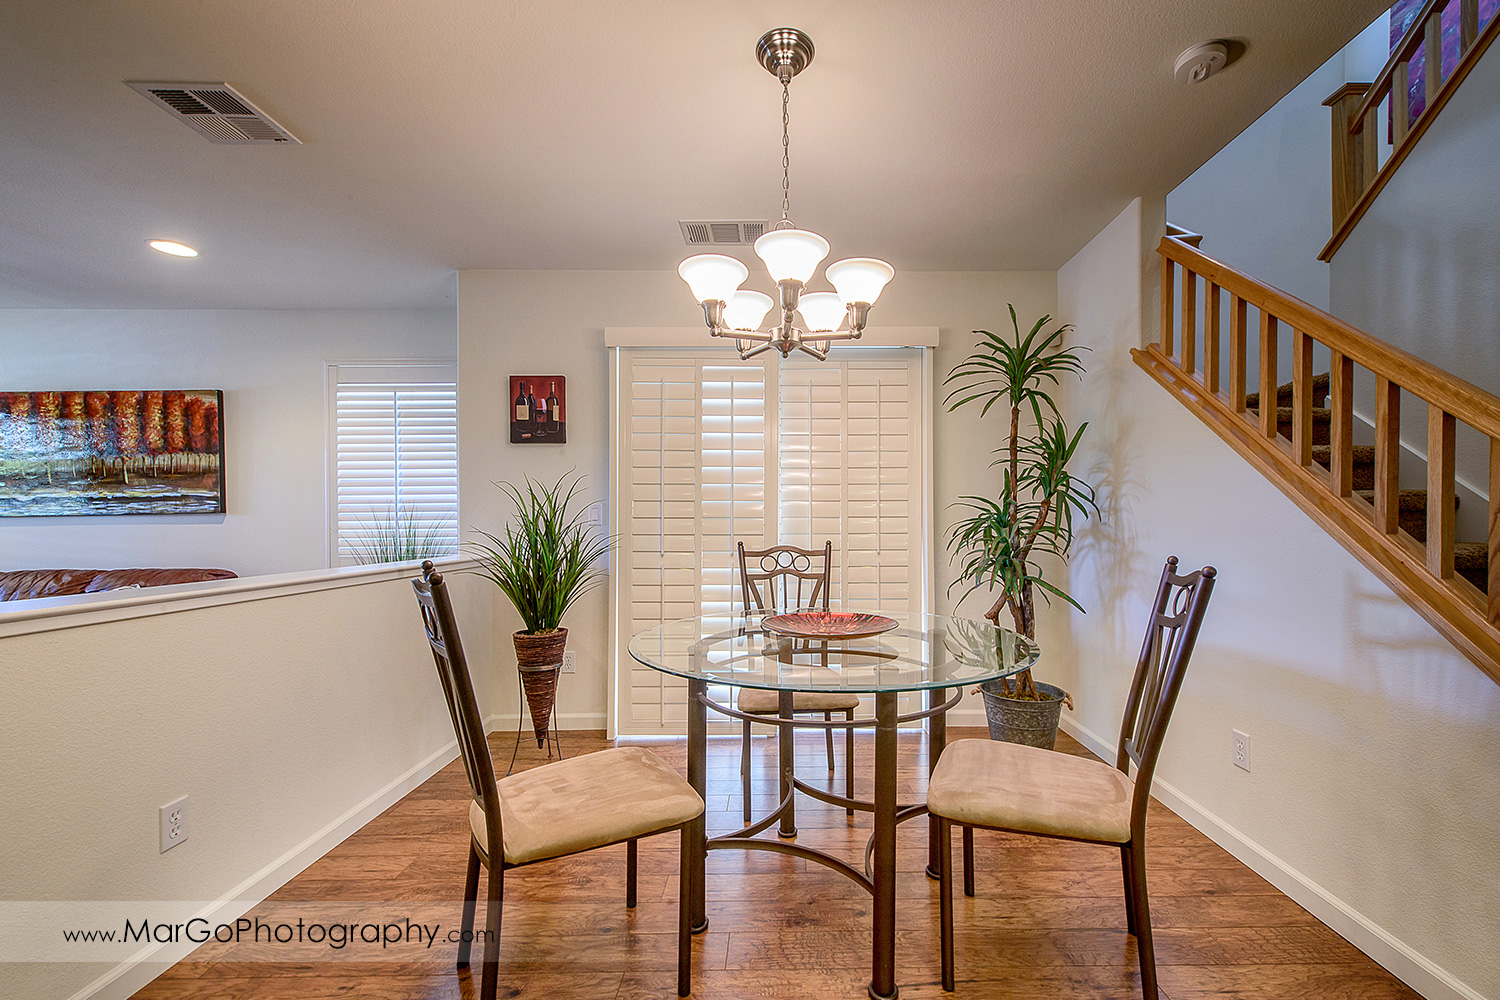 Pittsburd house dining room with round glass table - real estate photography